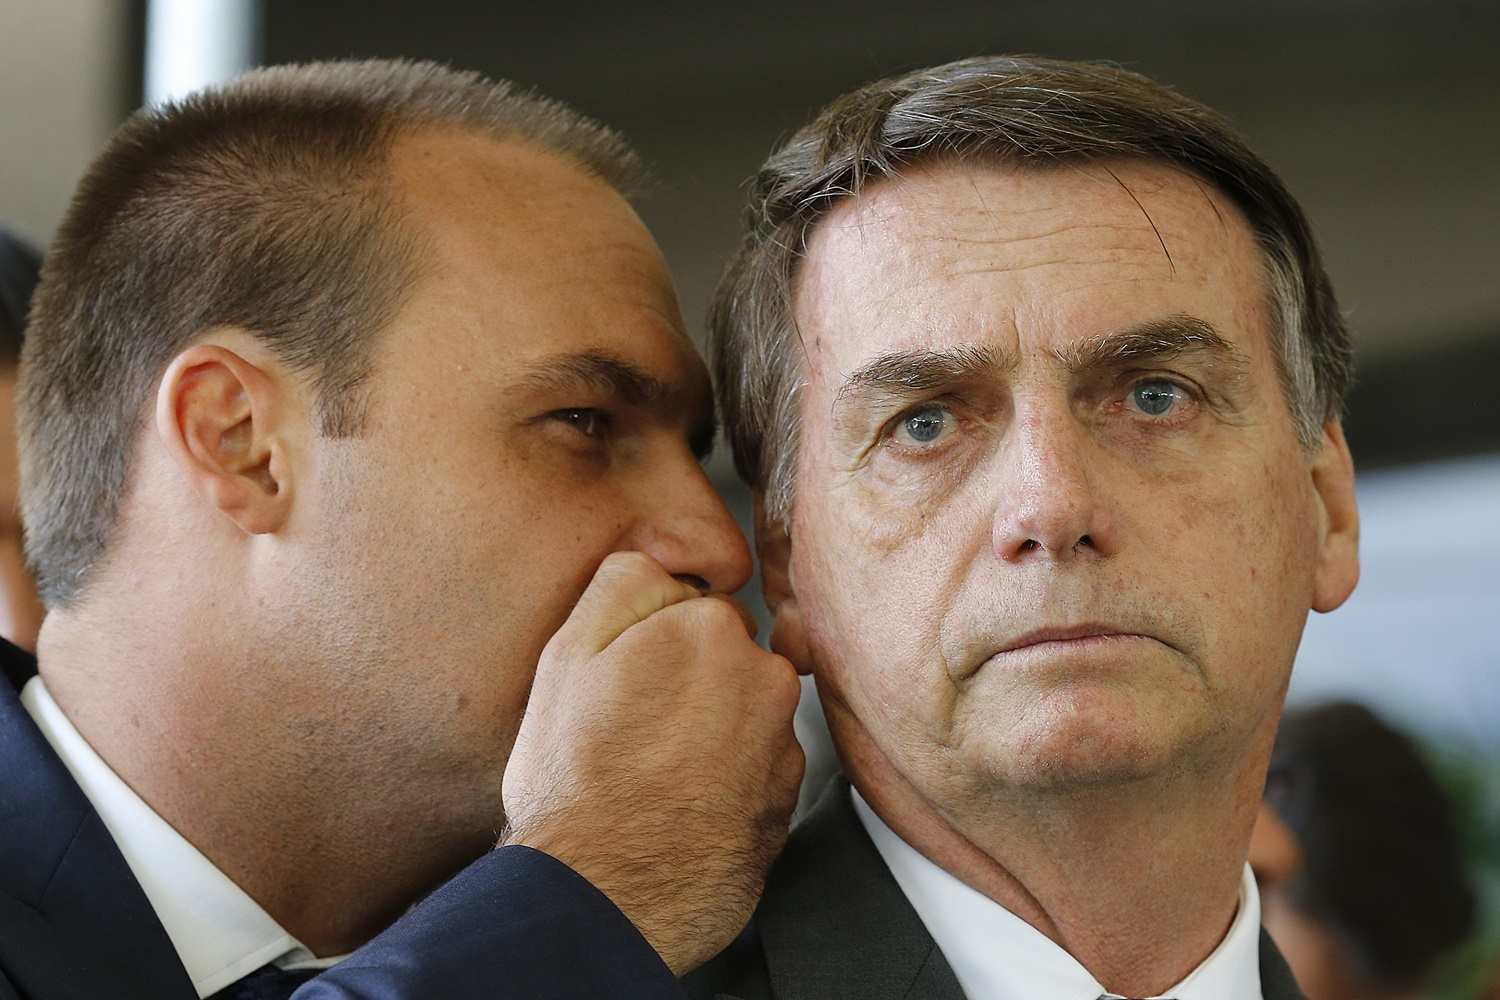 Tapa na cara do eleitorado do presidente Jair Bolsonaro